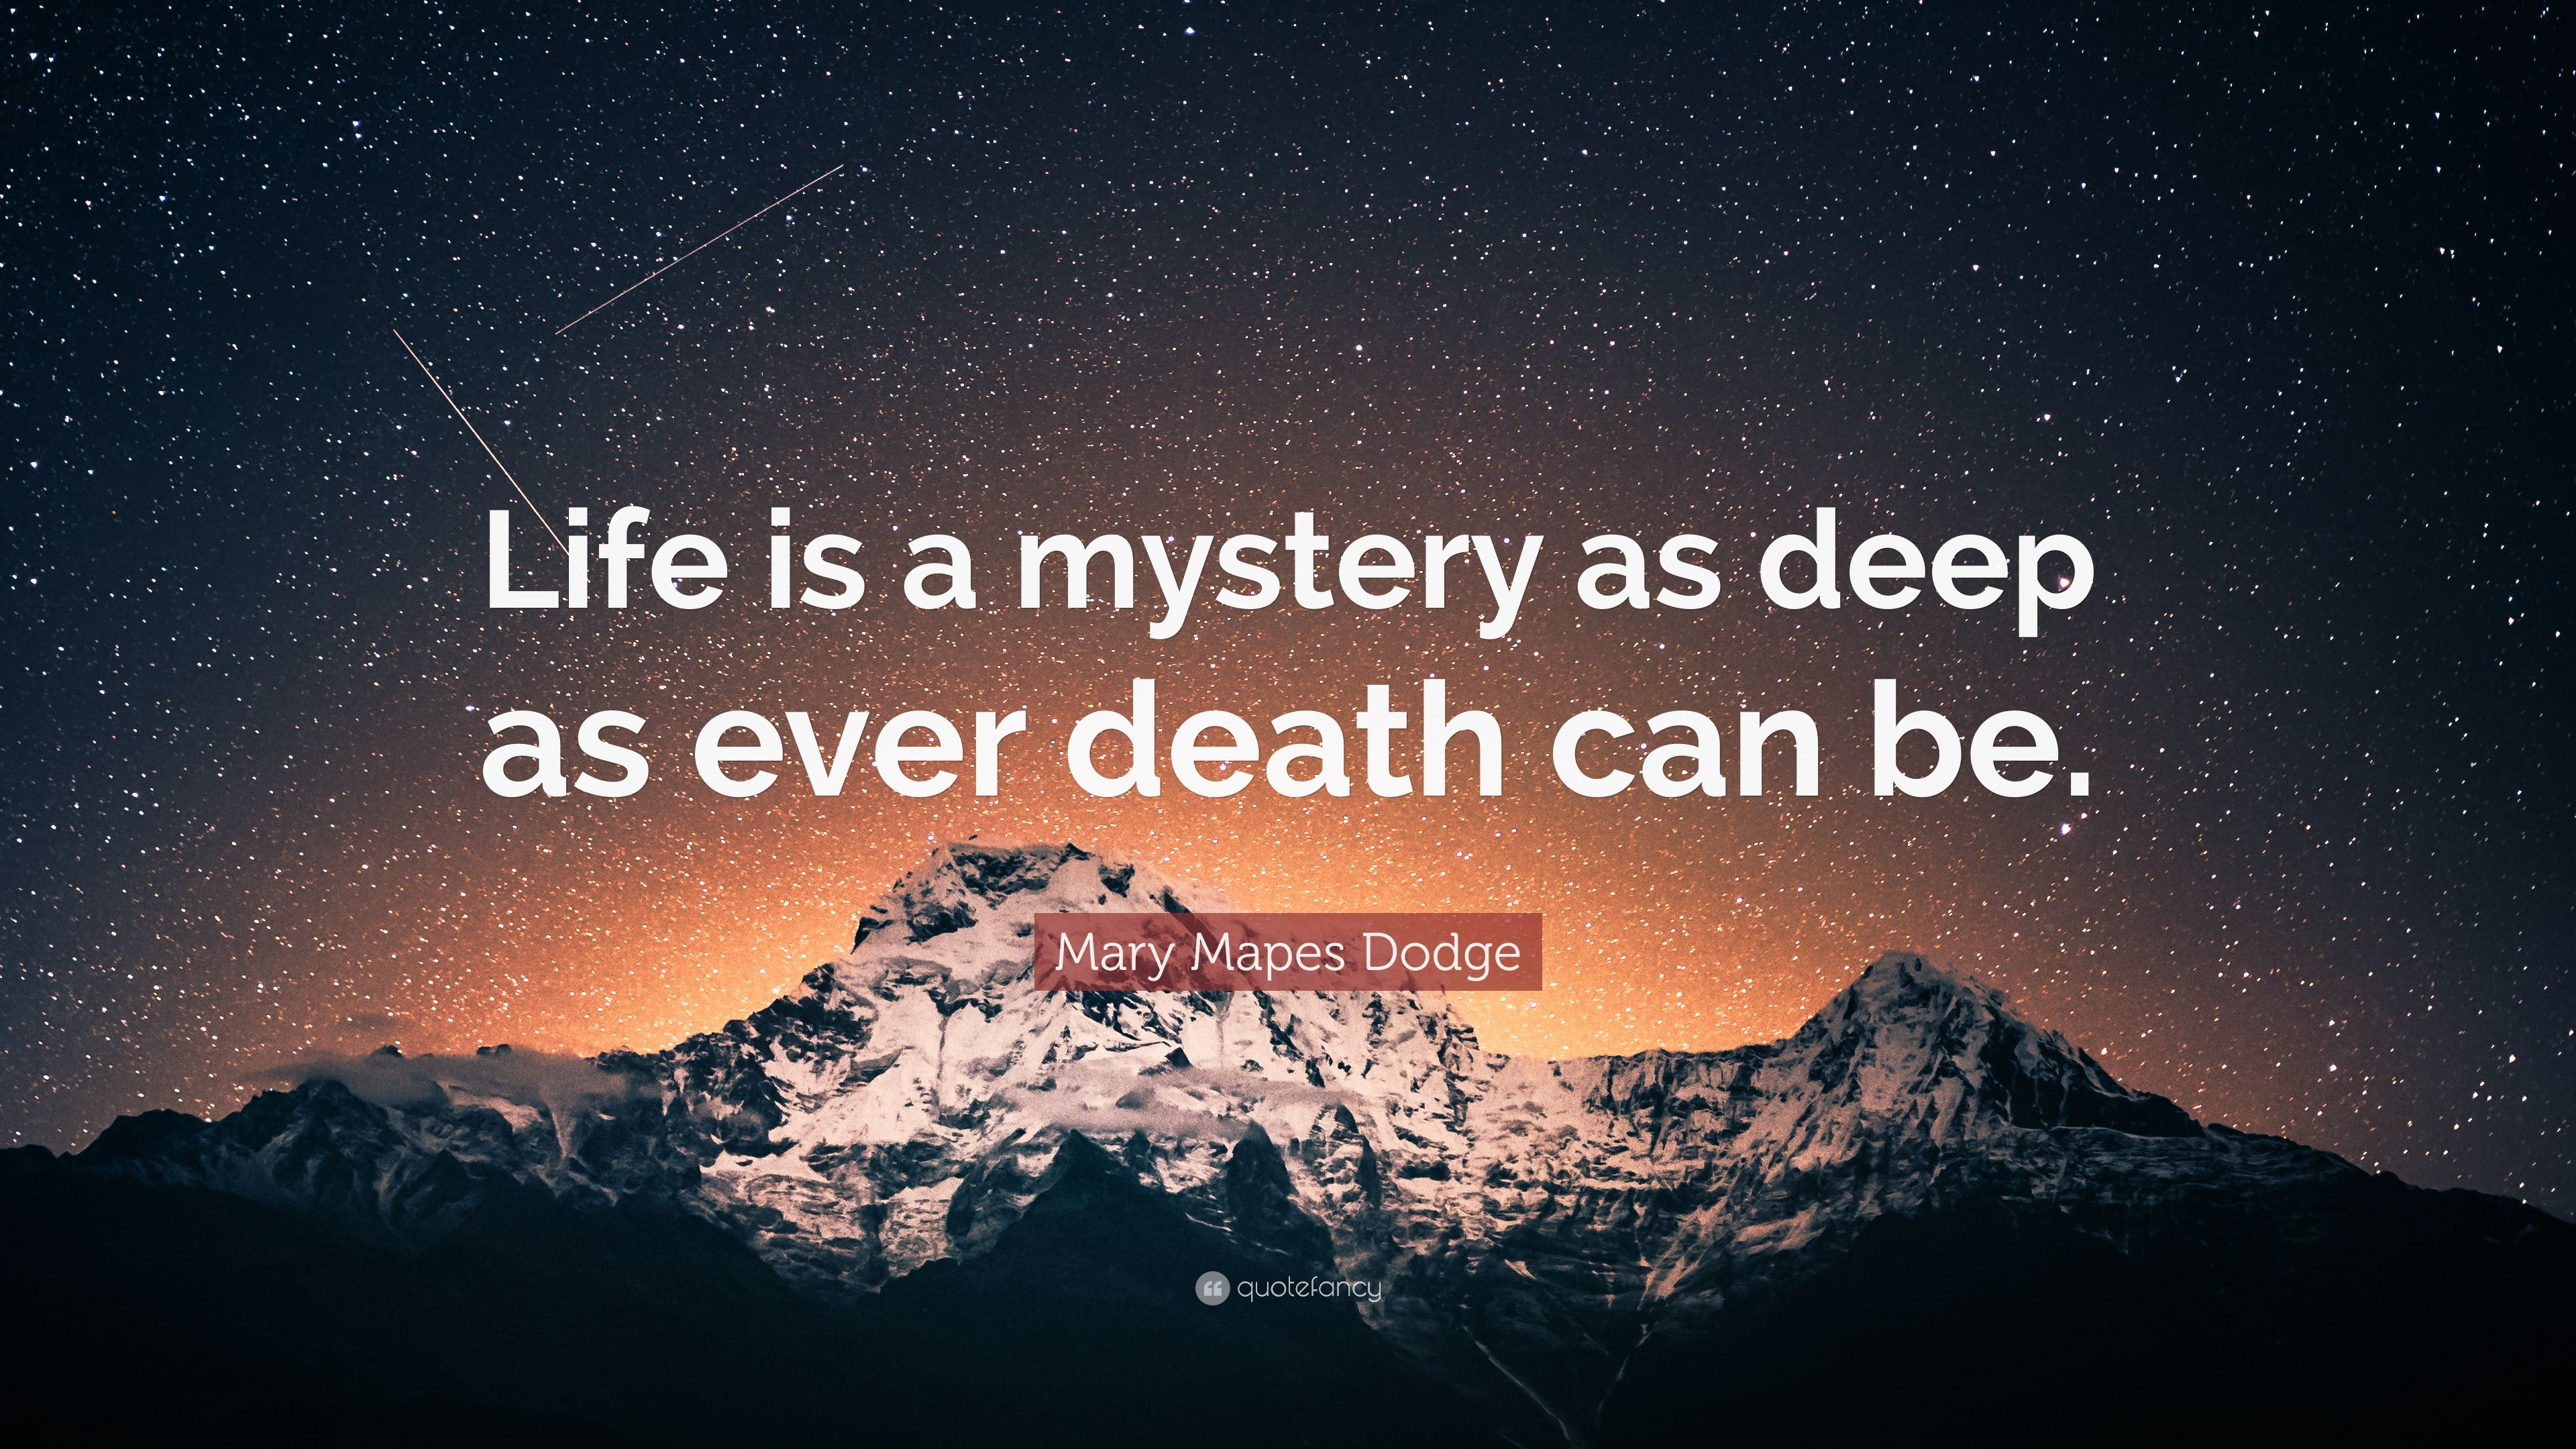 Mary Mapes Dodge Quote Life Is A Mystery As Deep As Ever Death Can